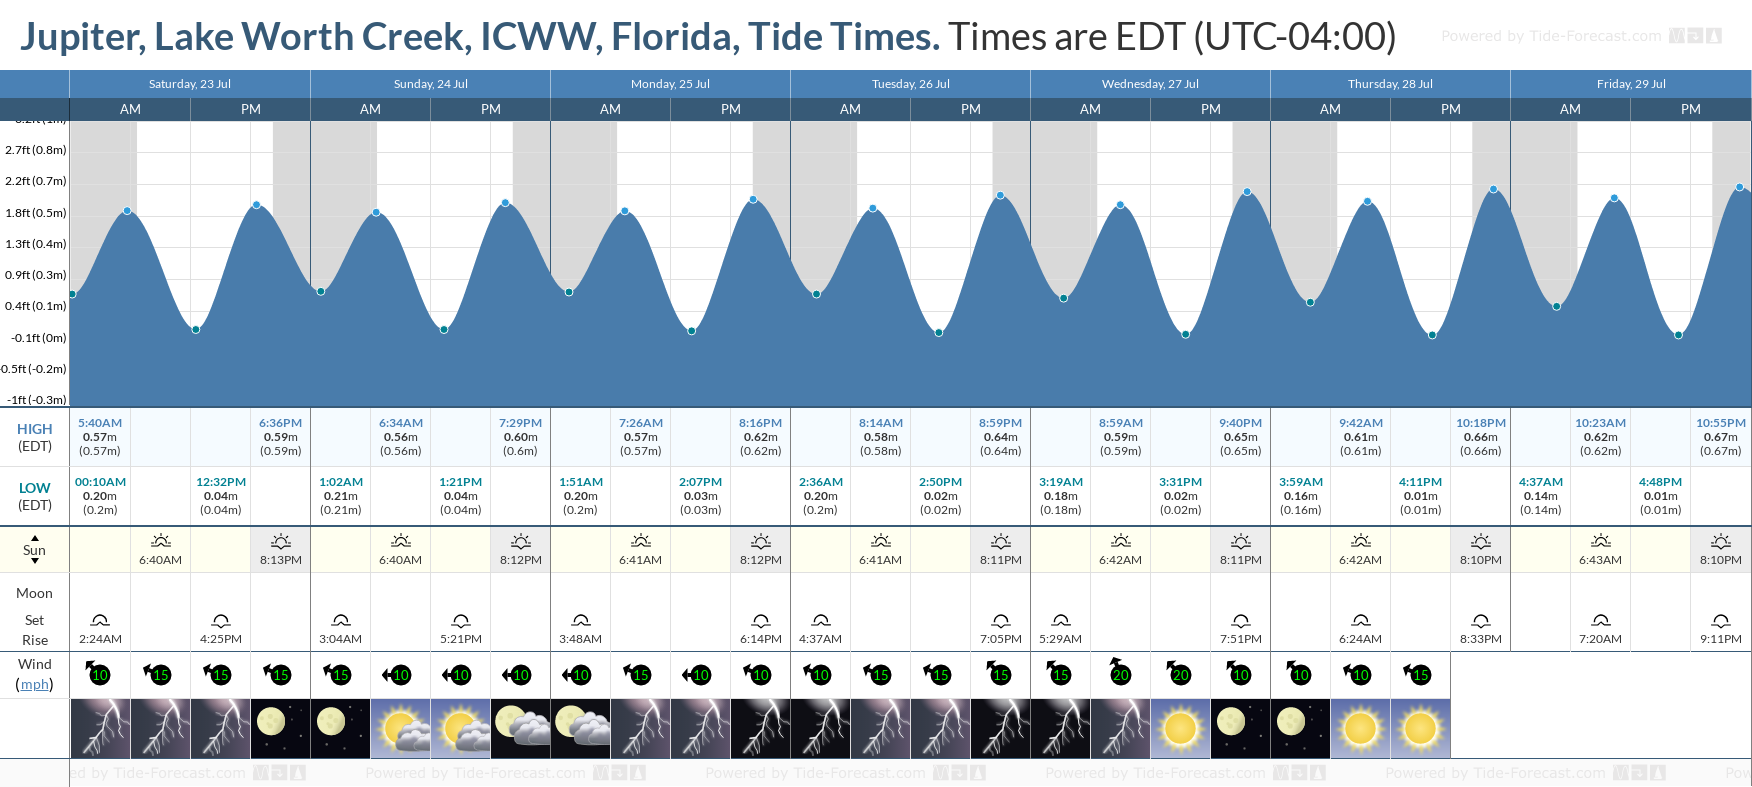 Jupiter, Lake Worth Creek, ICWW, Florida Tide Chart including high and low tide tide times for the next 7 days